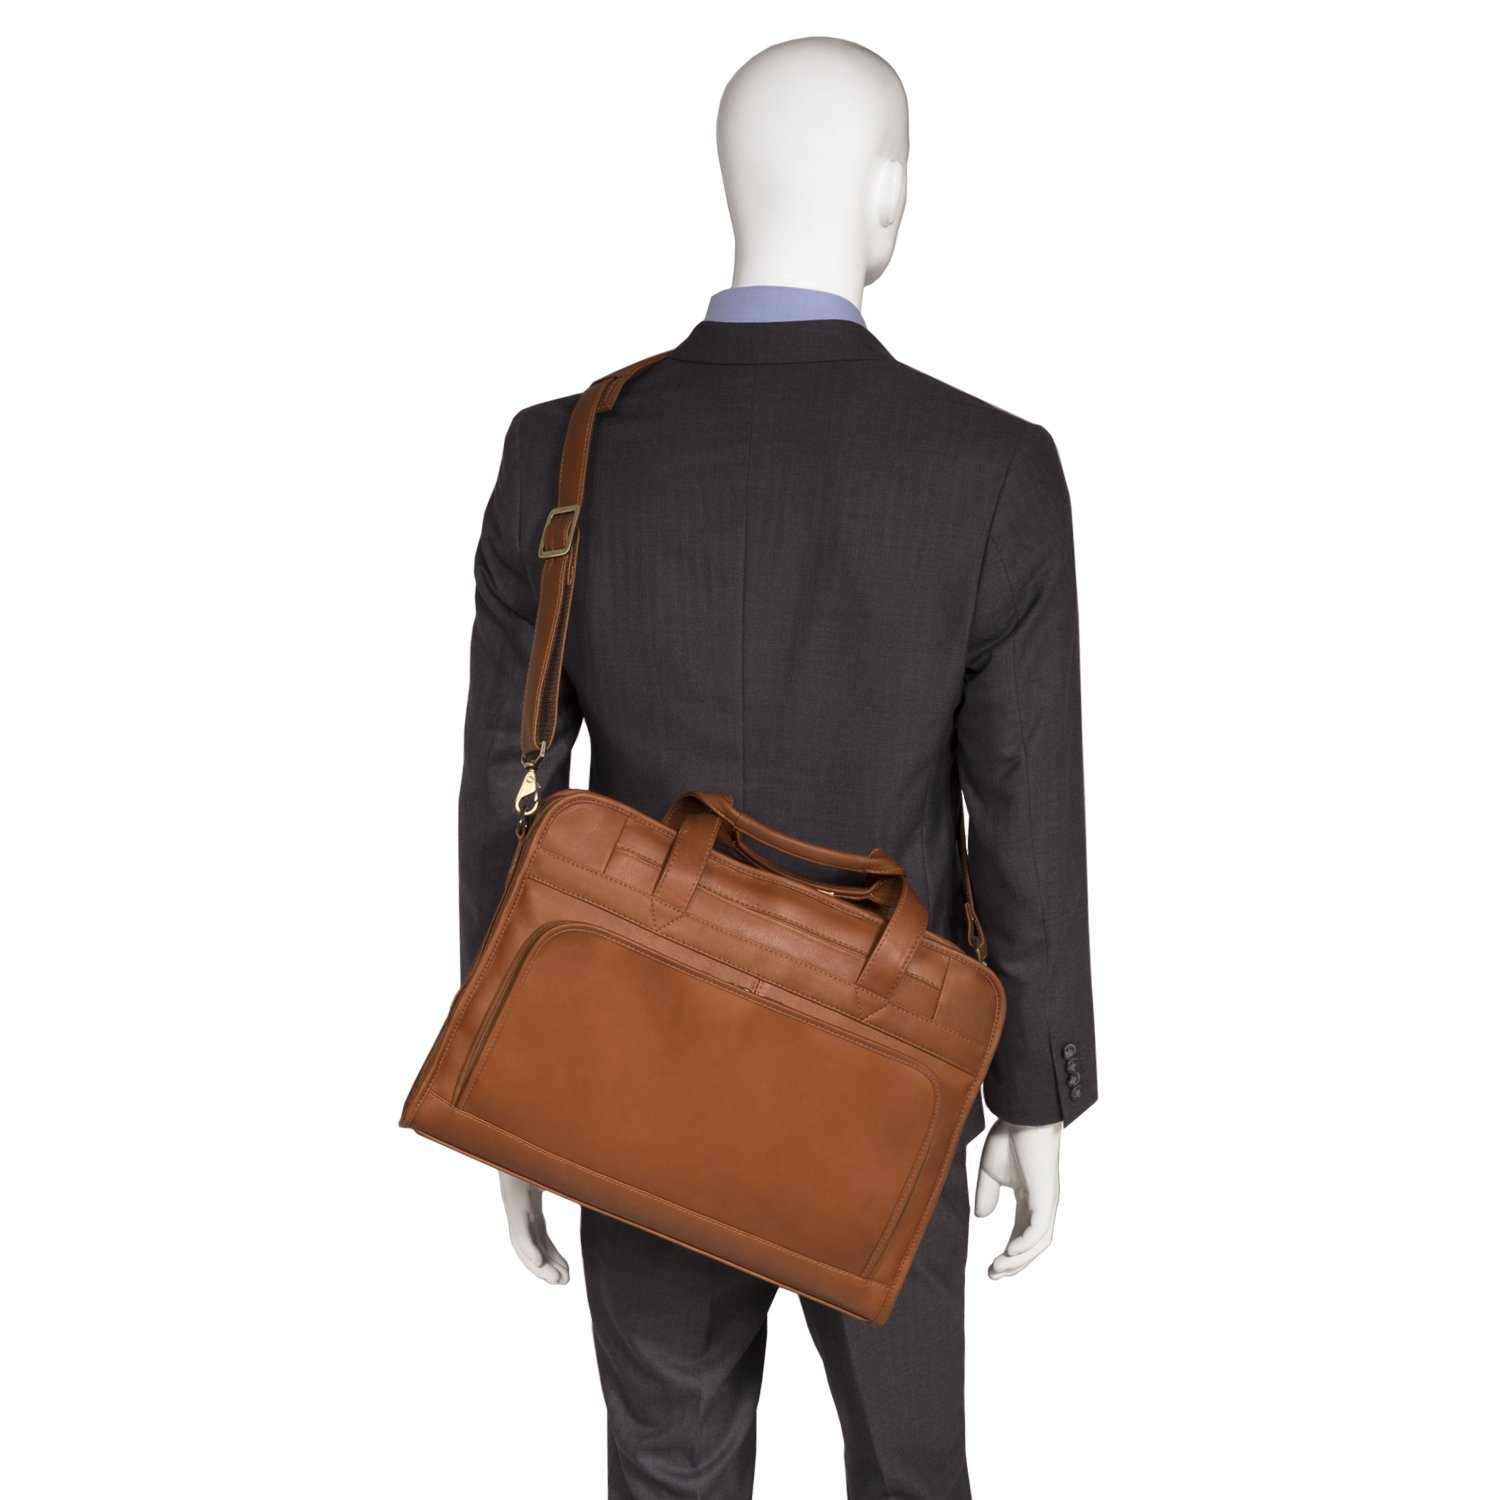 Muiska Leather Top-Zip 17 Inch Laptop Briefcase, Saddle, One Size by Muiska (Image #6)